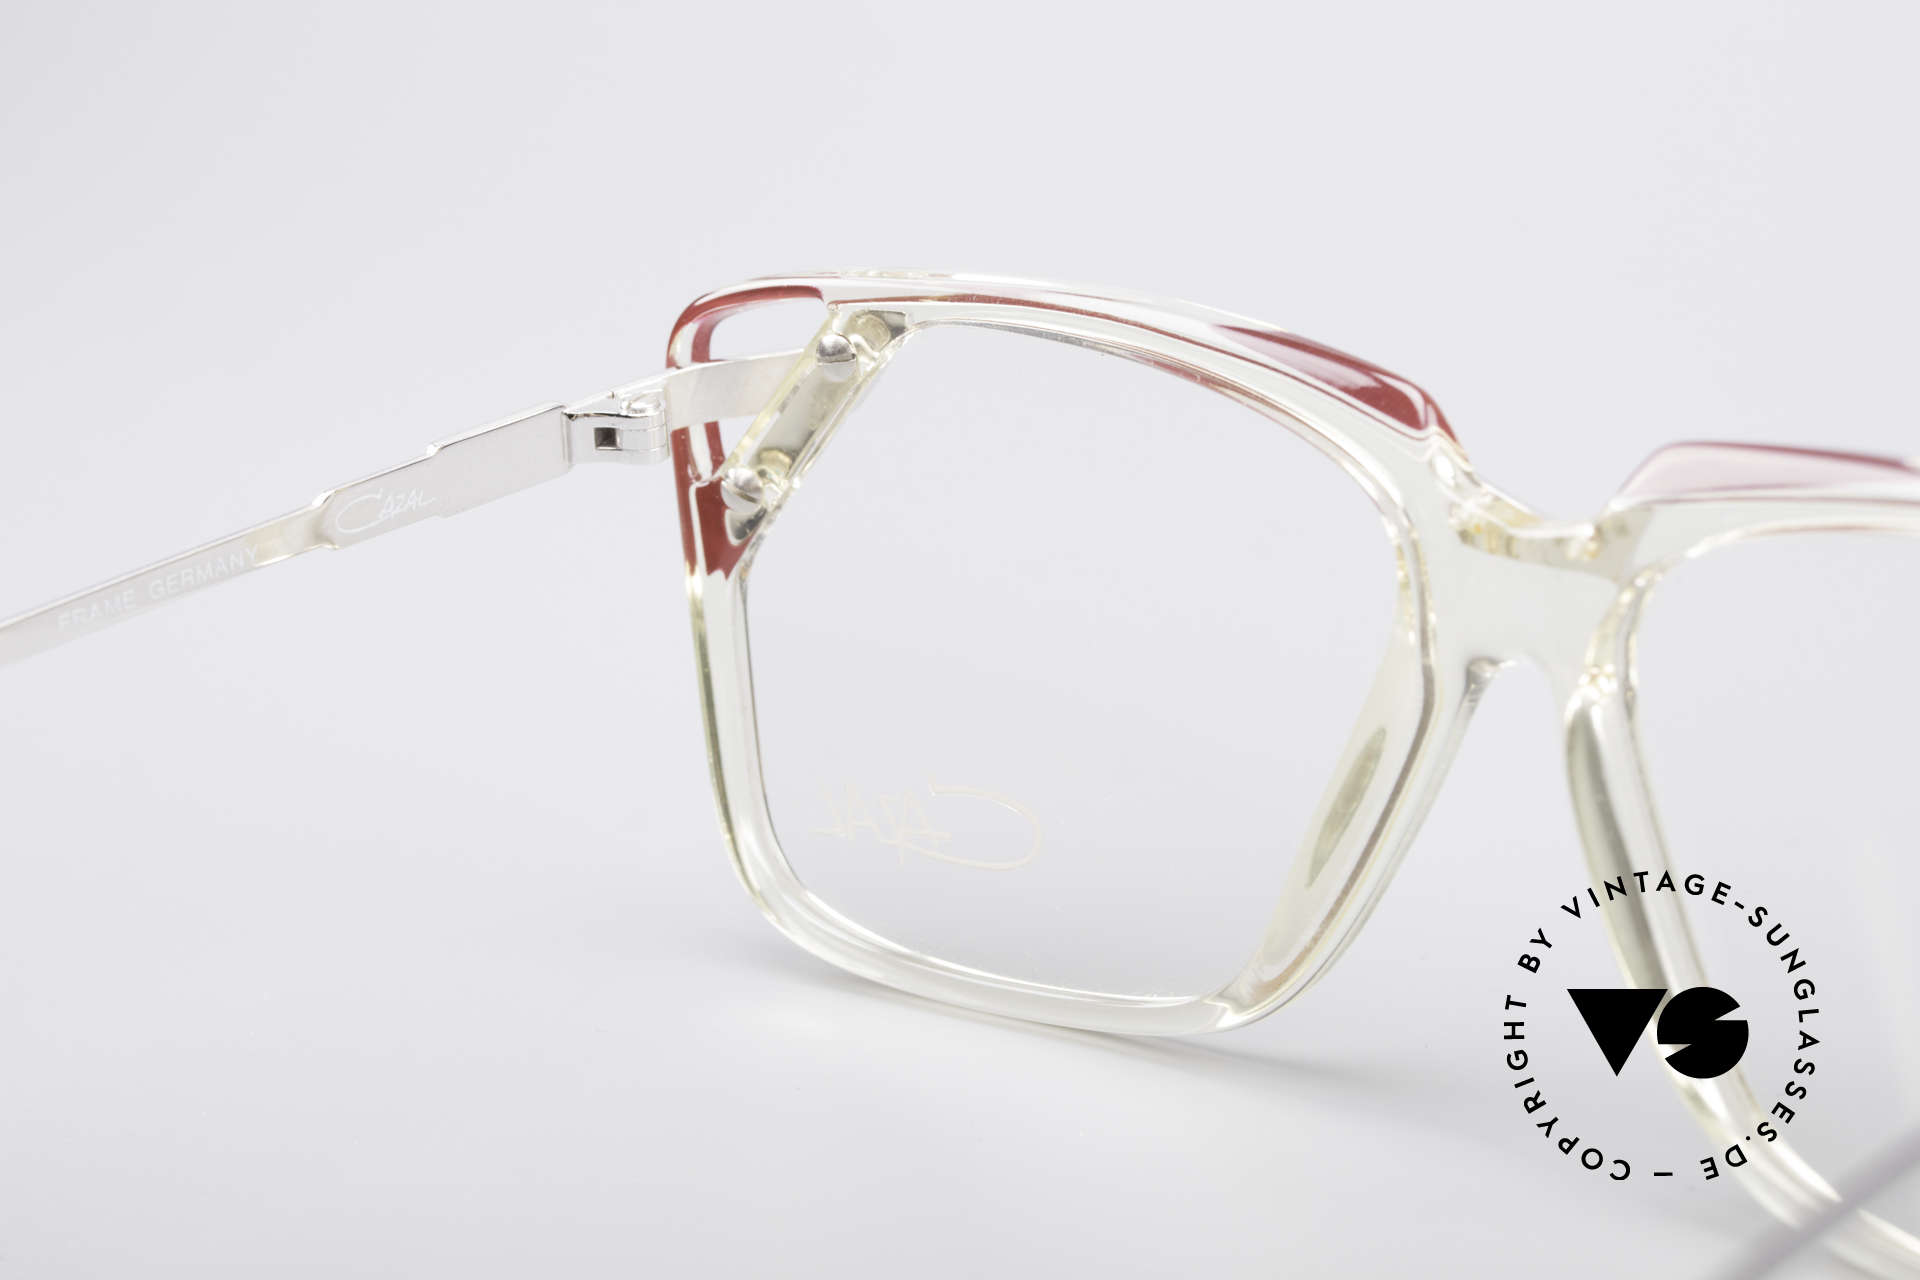 Cazal 342 90's Designer Glasses, frame can be glazed with lenses of any kind, Made for Women